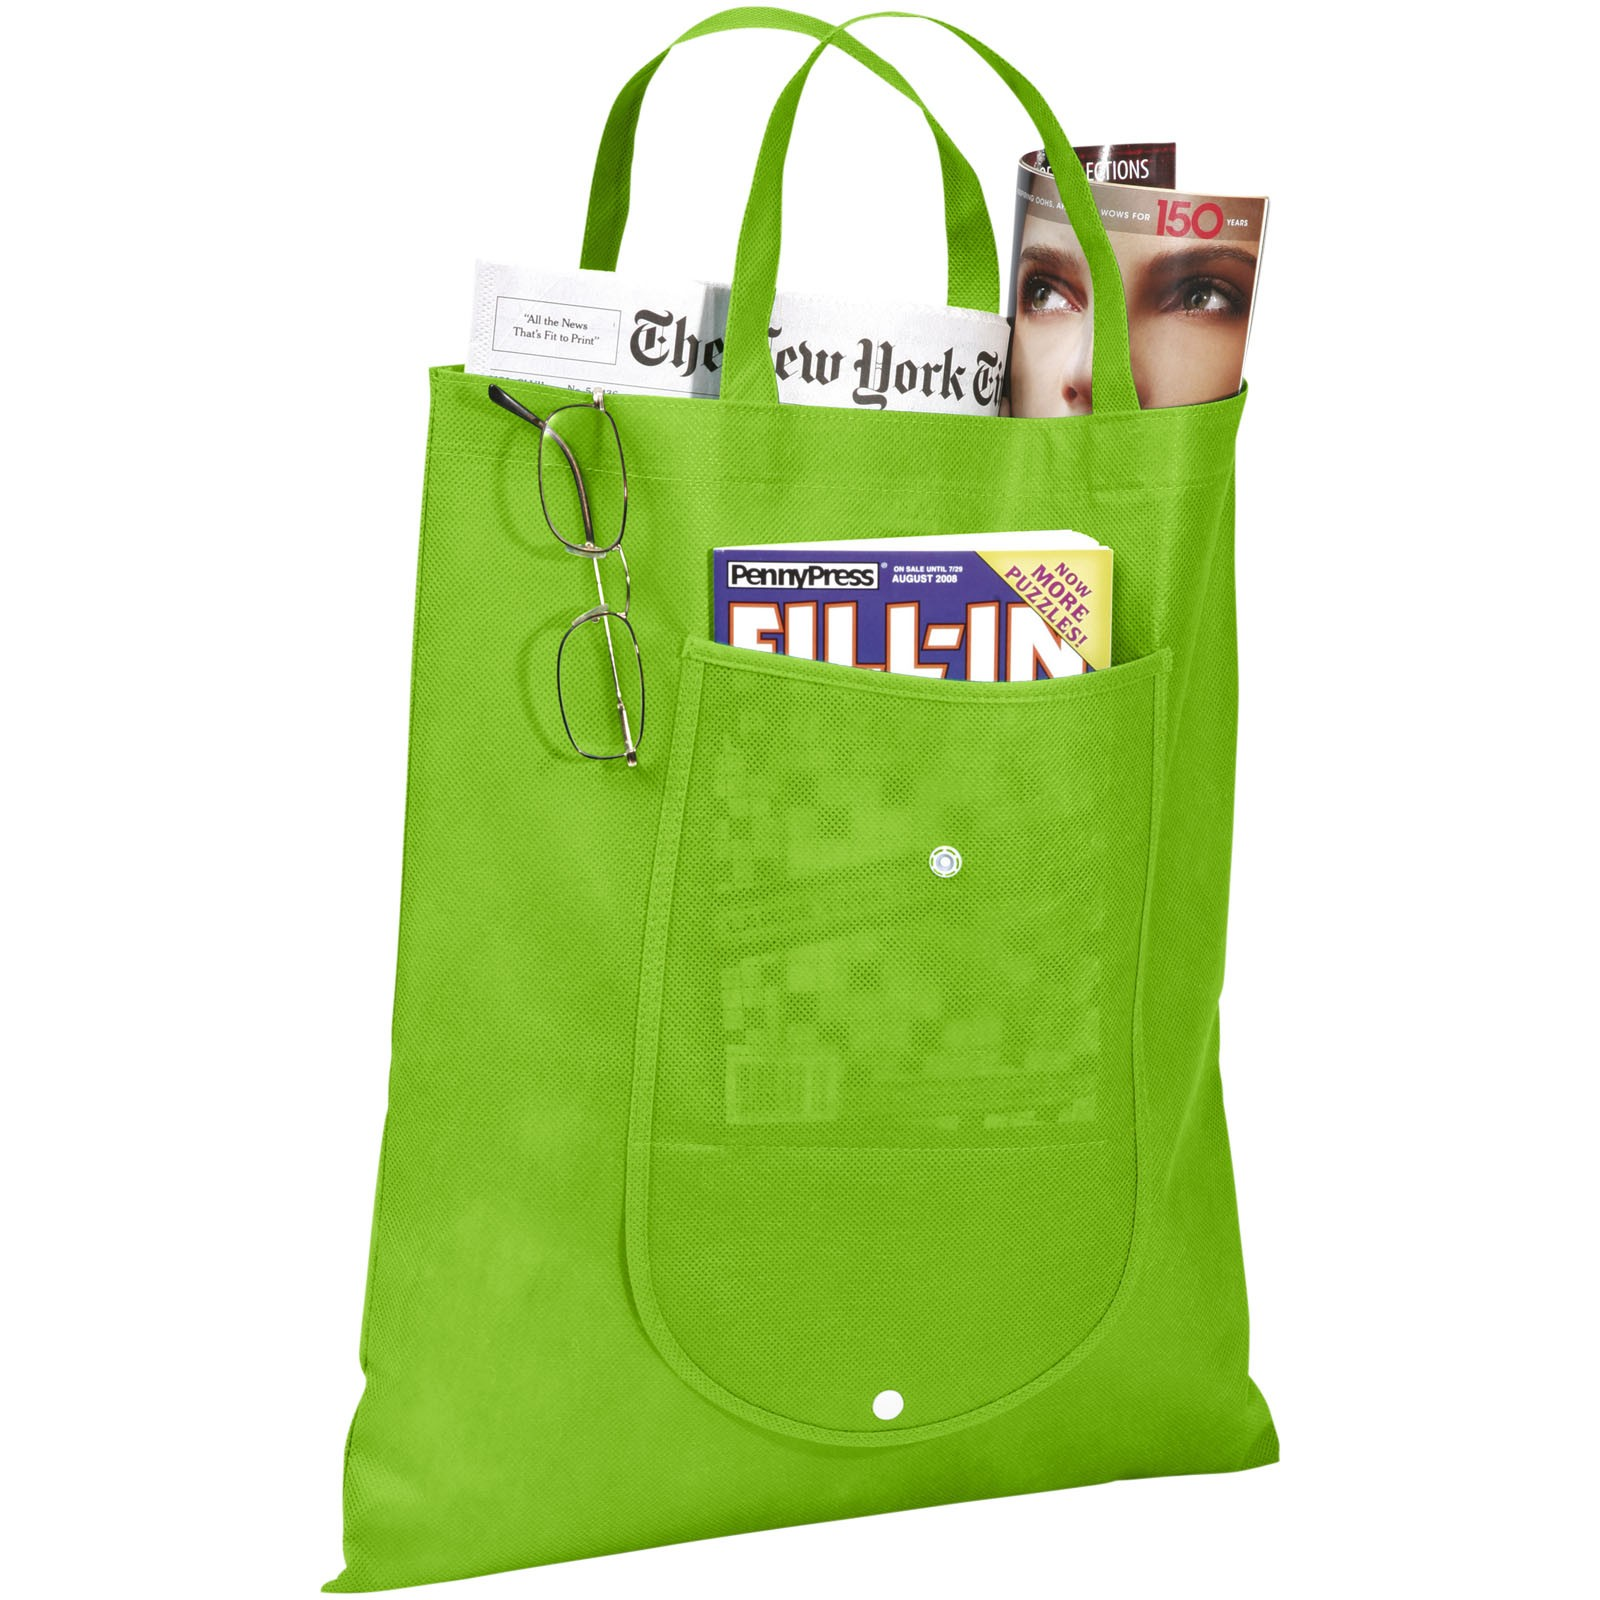 Maple buttoned foldable non-woven tote bag - Lime